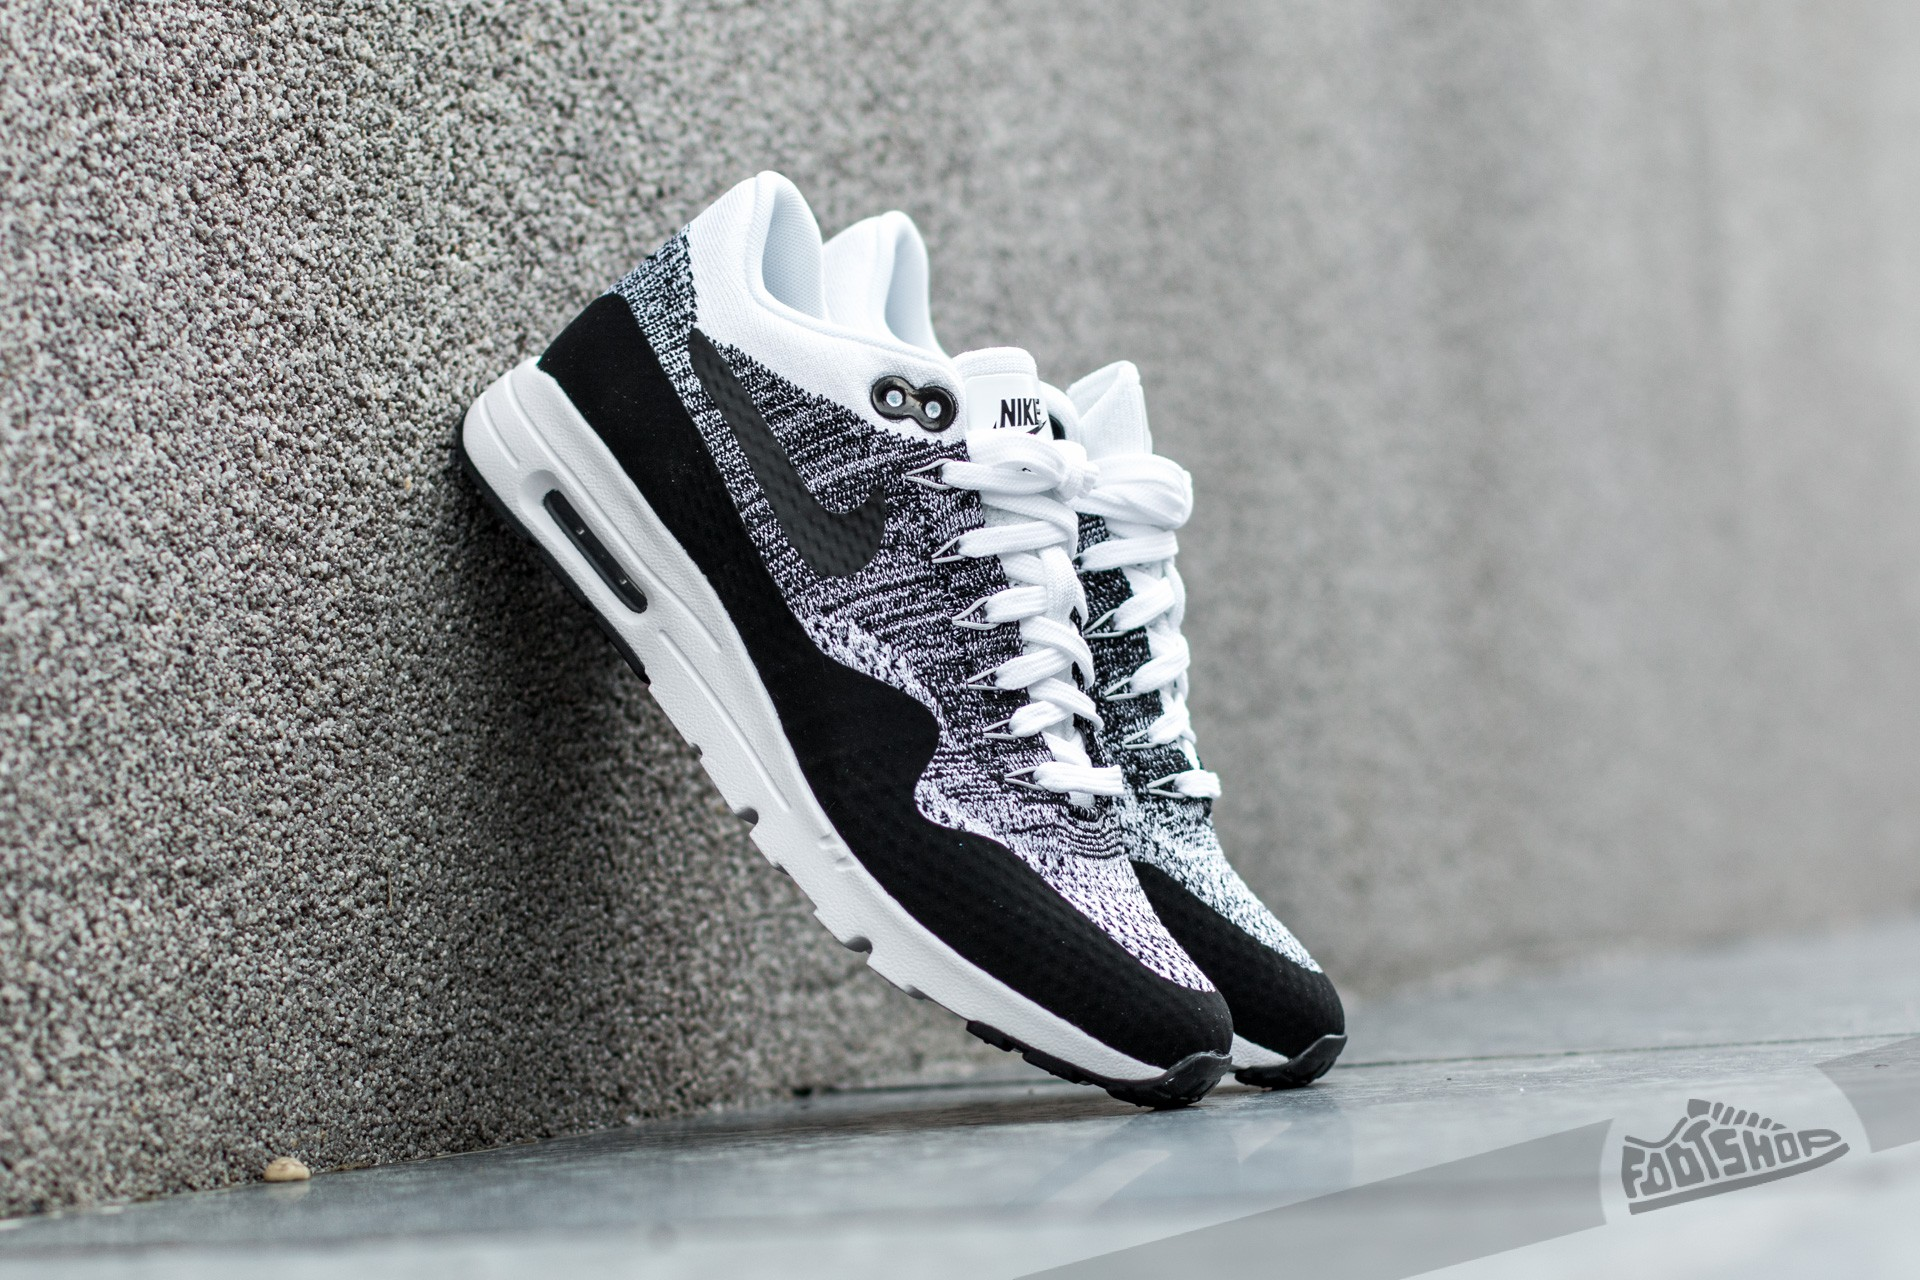 new product af1f0 88832 Nike W Air Max 1 Ultra Flyknit. White Black-Black